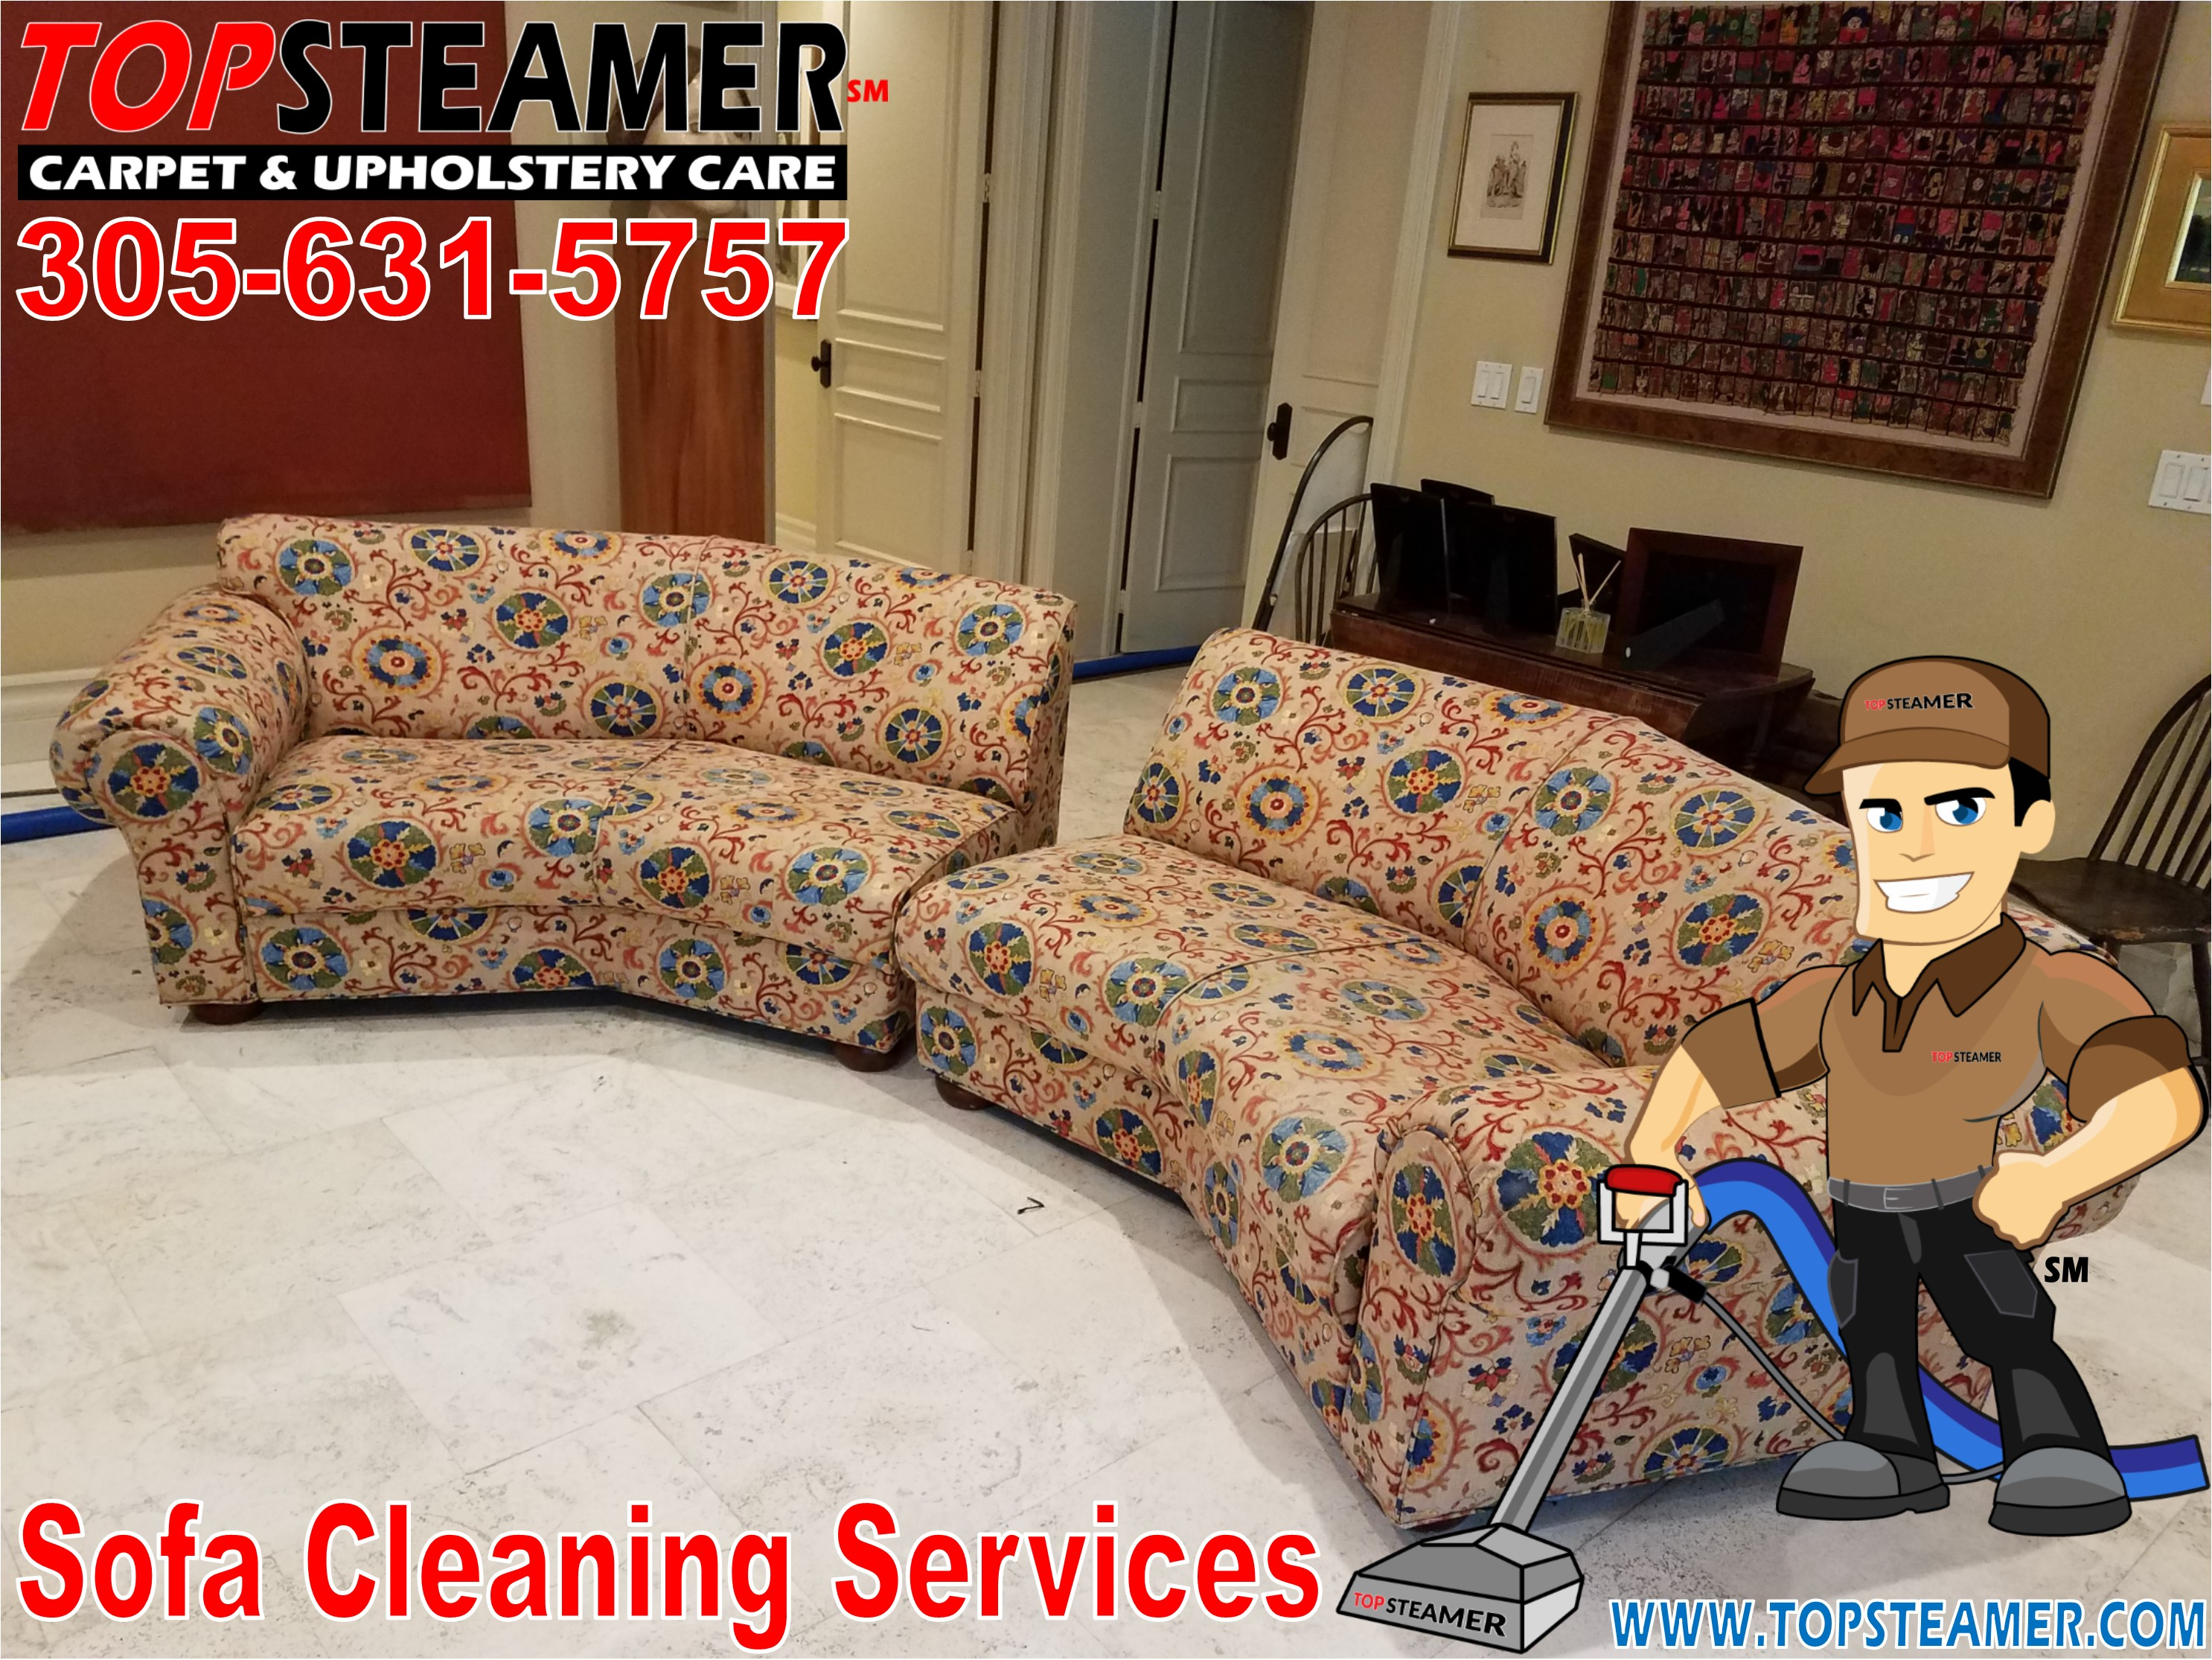 Top Steamer Carpet Cleaning Miami Sofa Cleaning Tile Cleaning